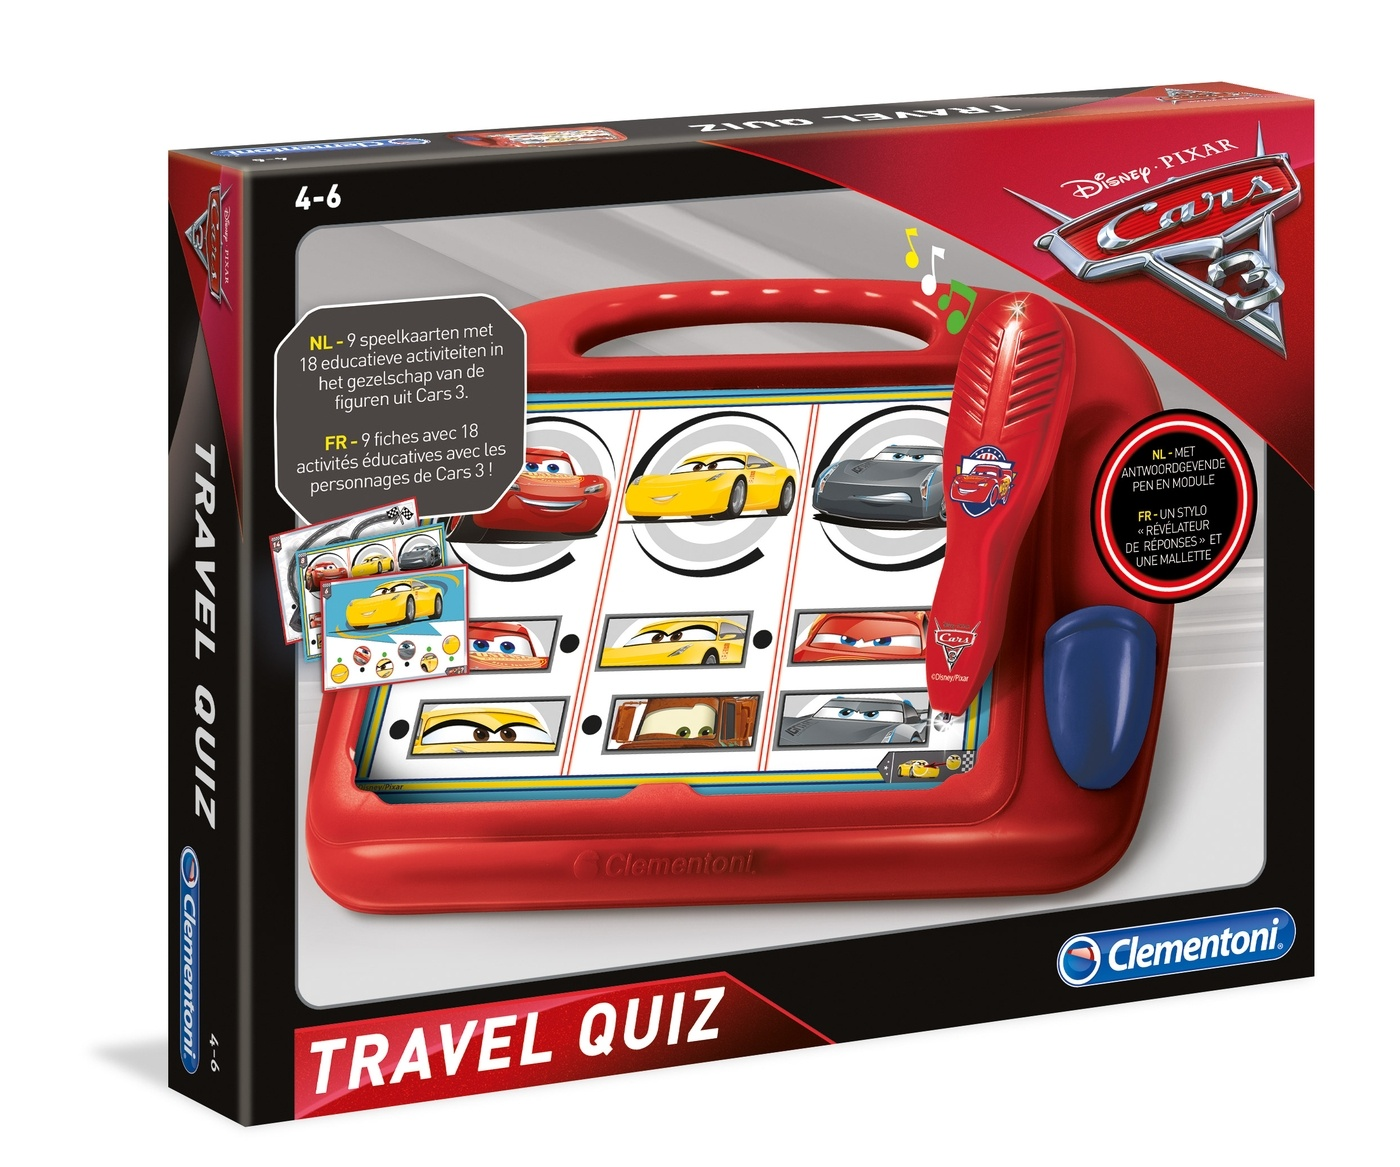 Disney Cars 3 travel quiz